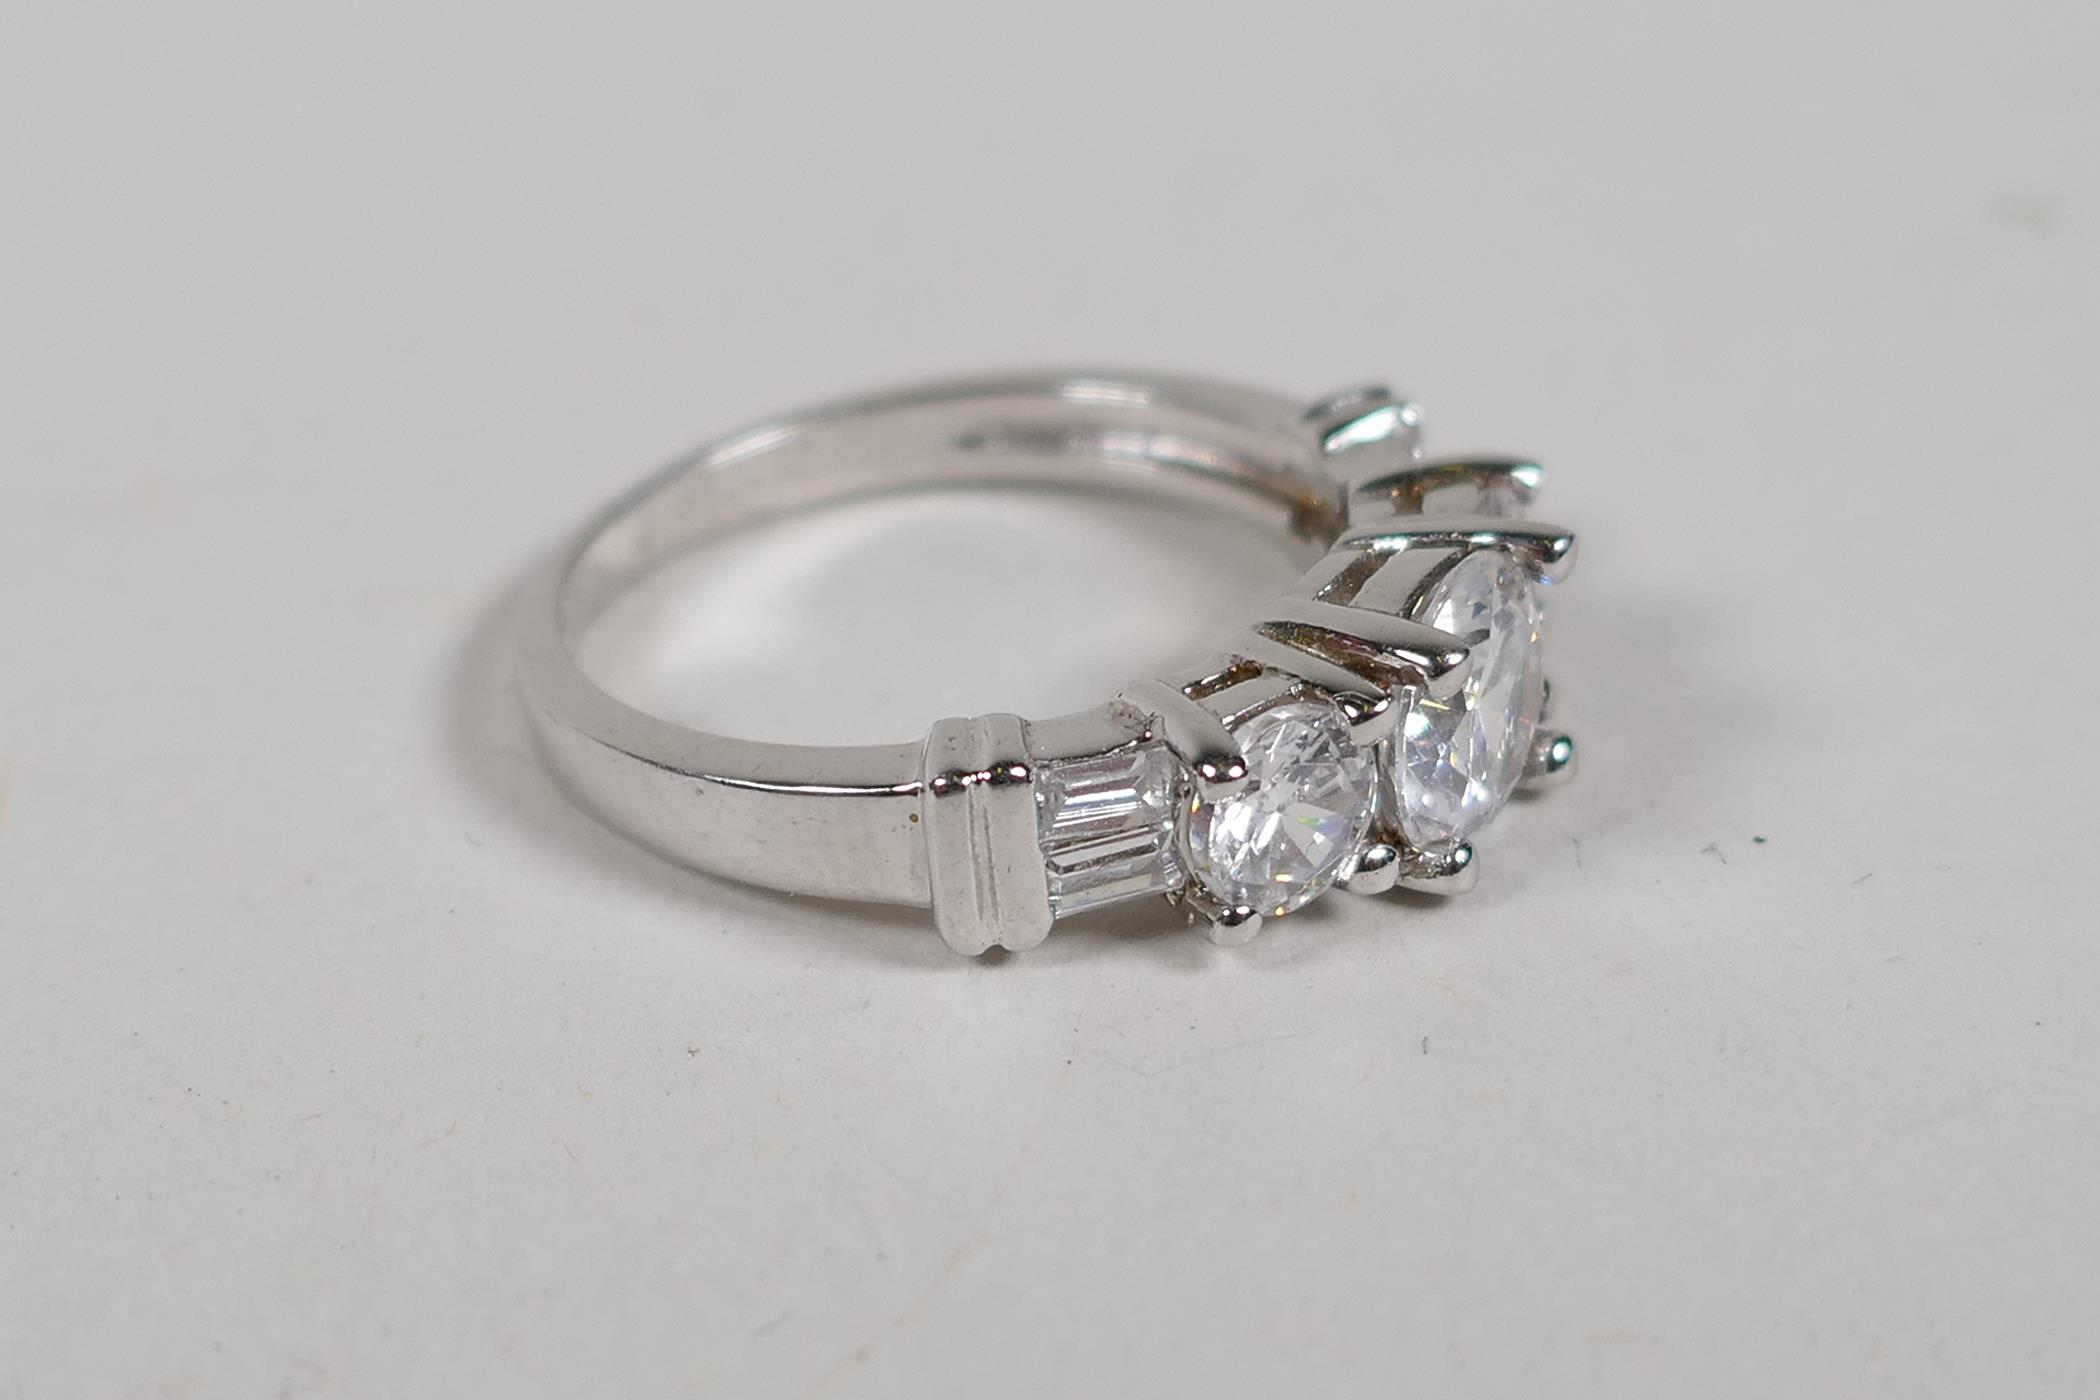 A 925 silver and cubic zirconia three stone dress ring, size N/O - Image 2 of 3